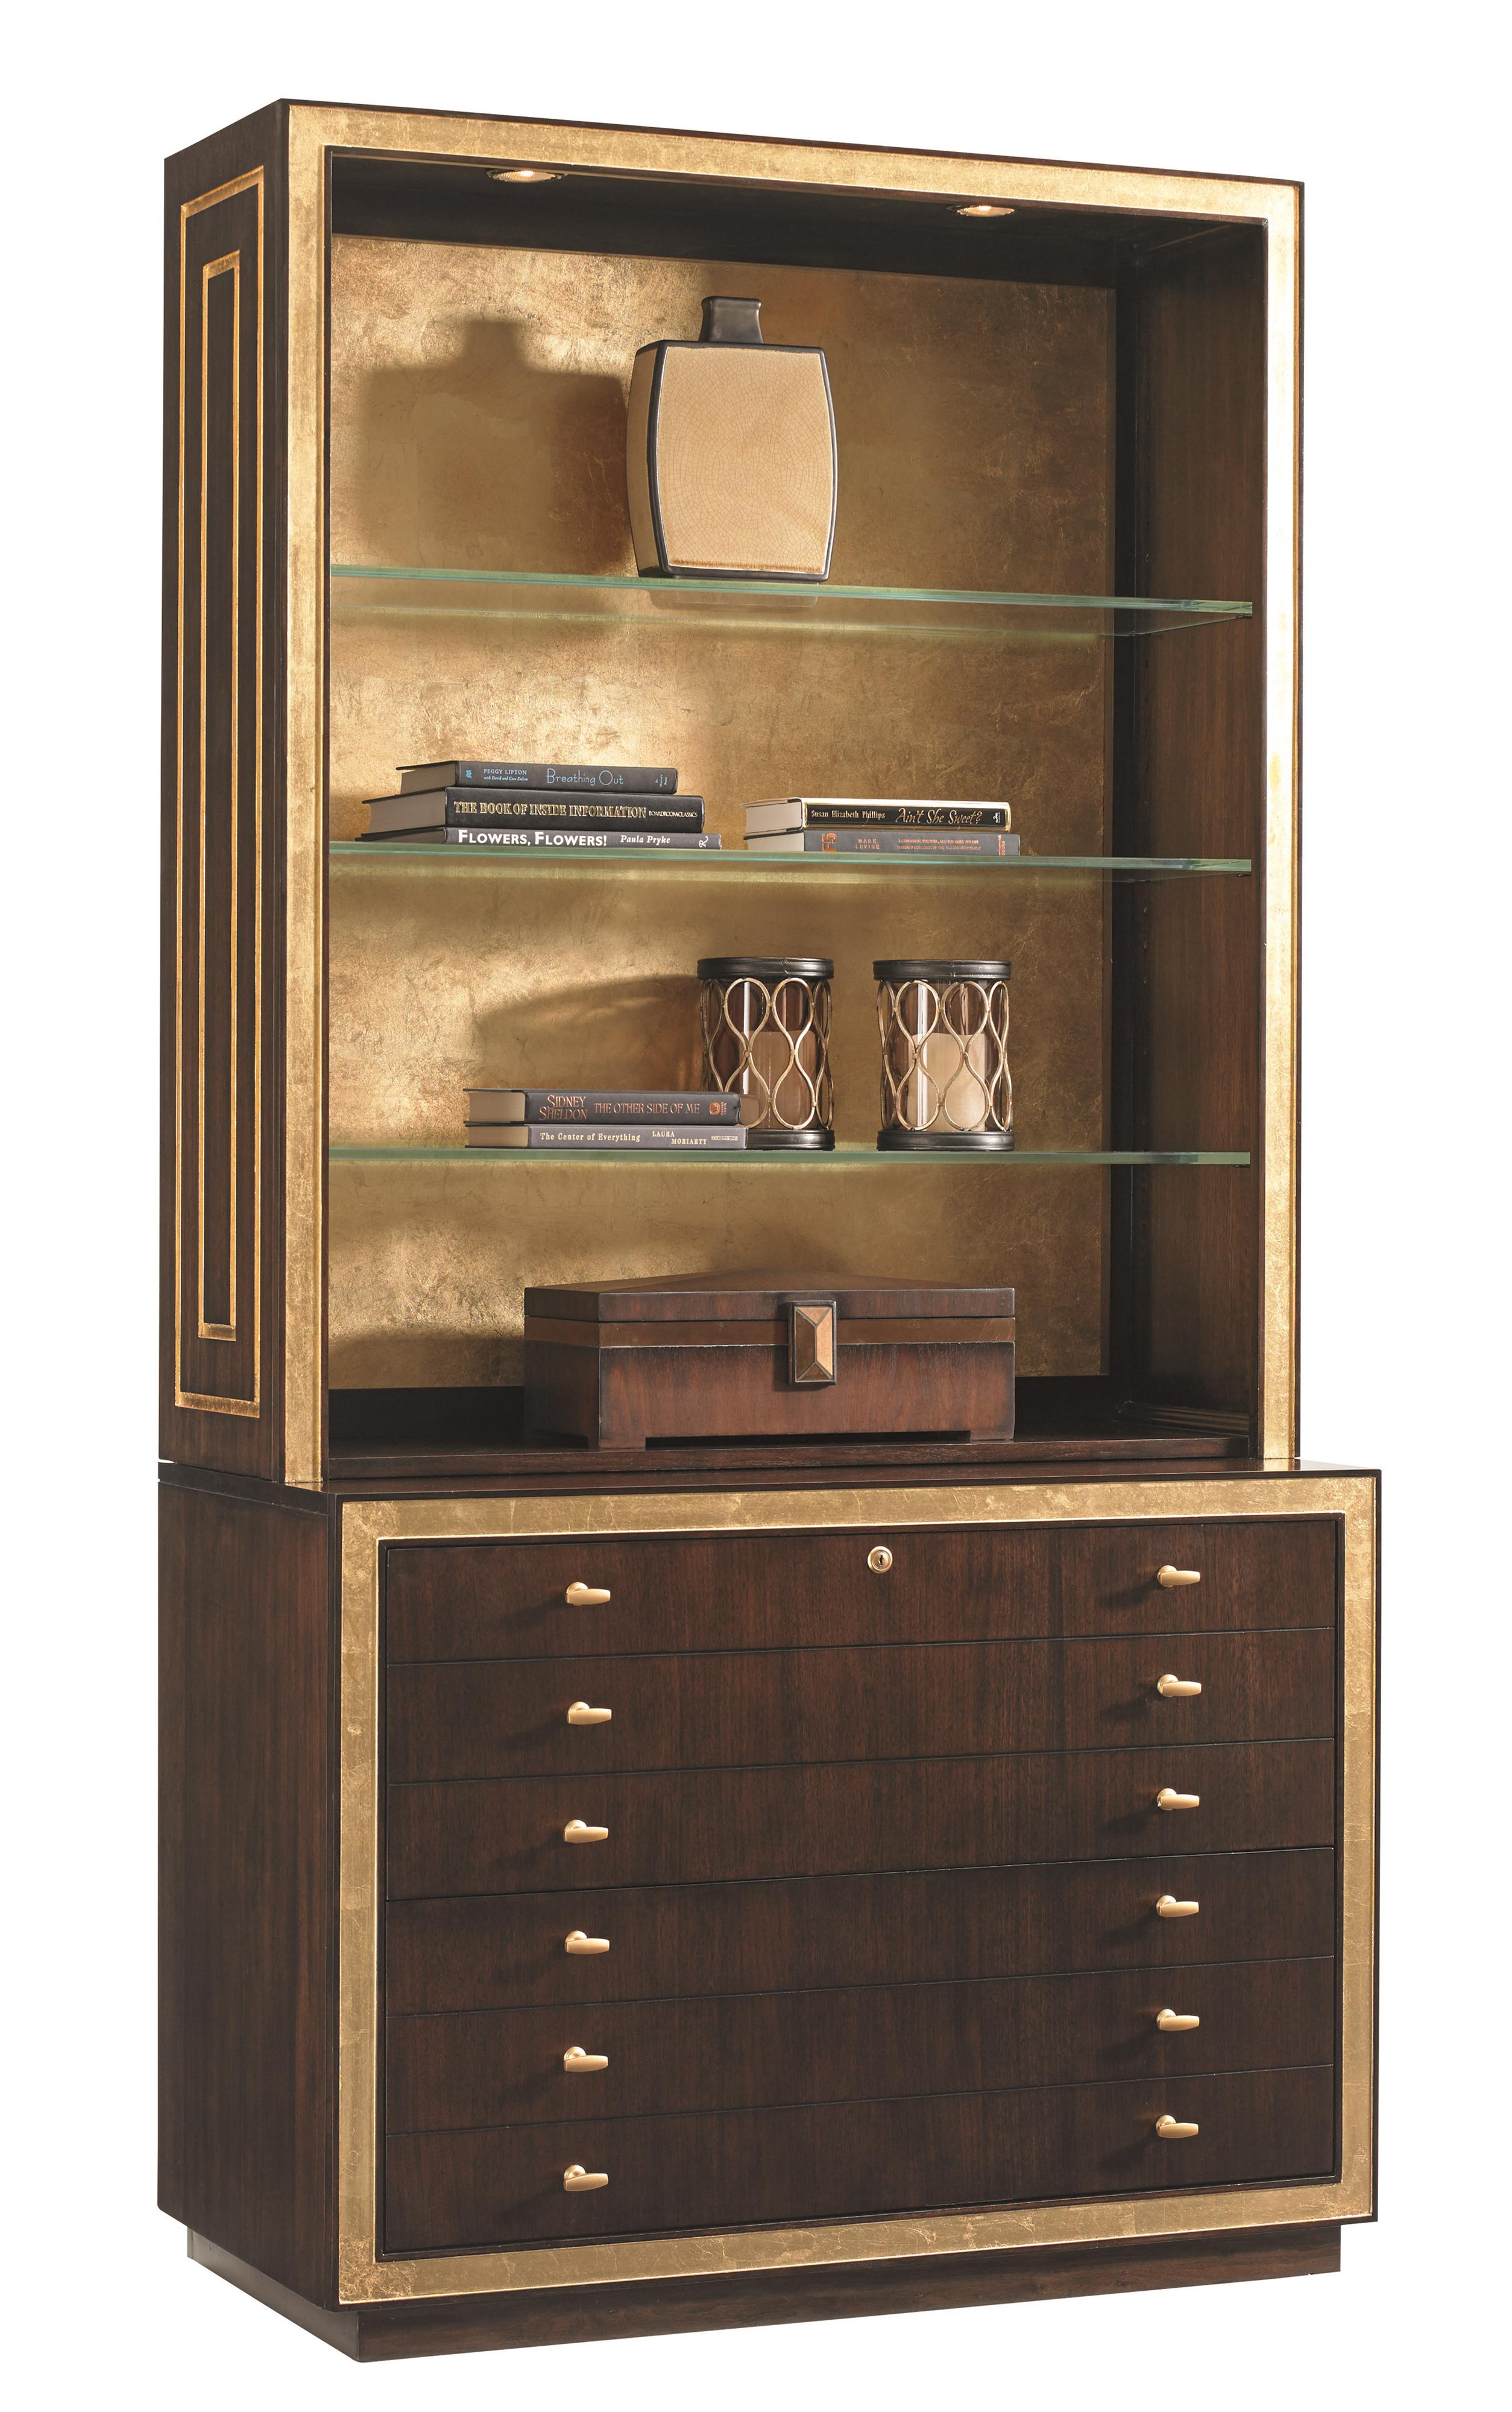 Bel Aire Beverly Palms Deck and File Cabinet Combo by Sligh at Baer's Furniture